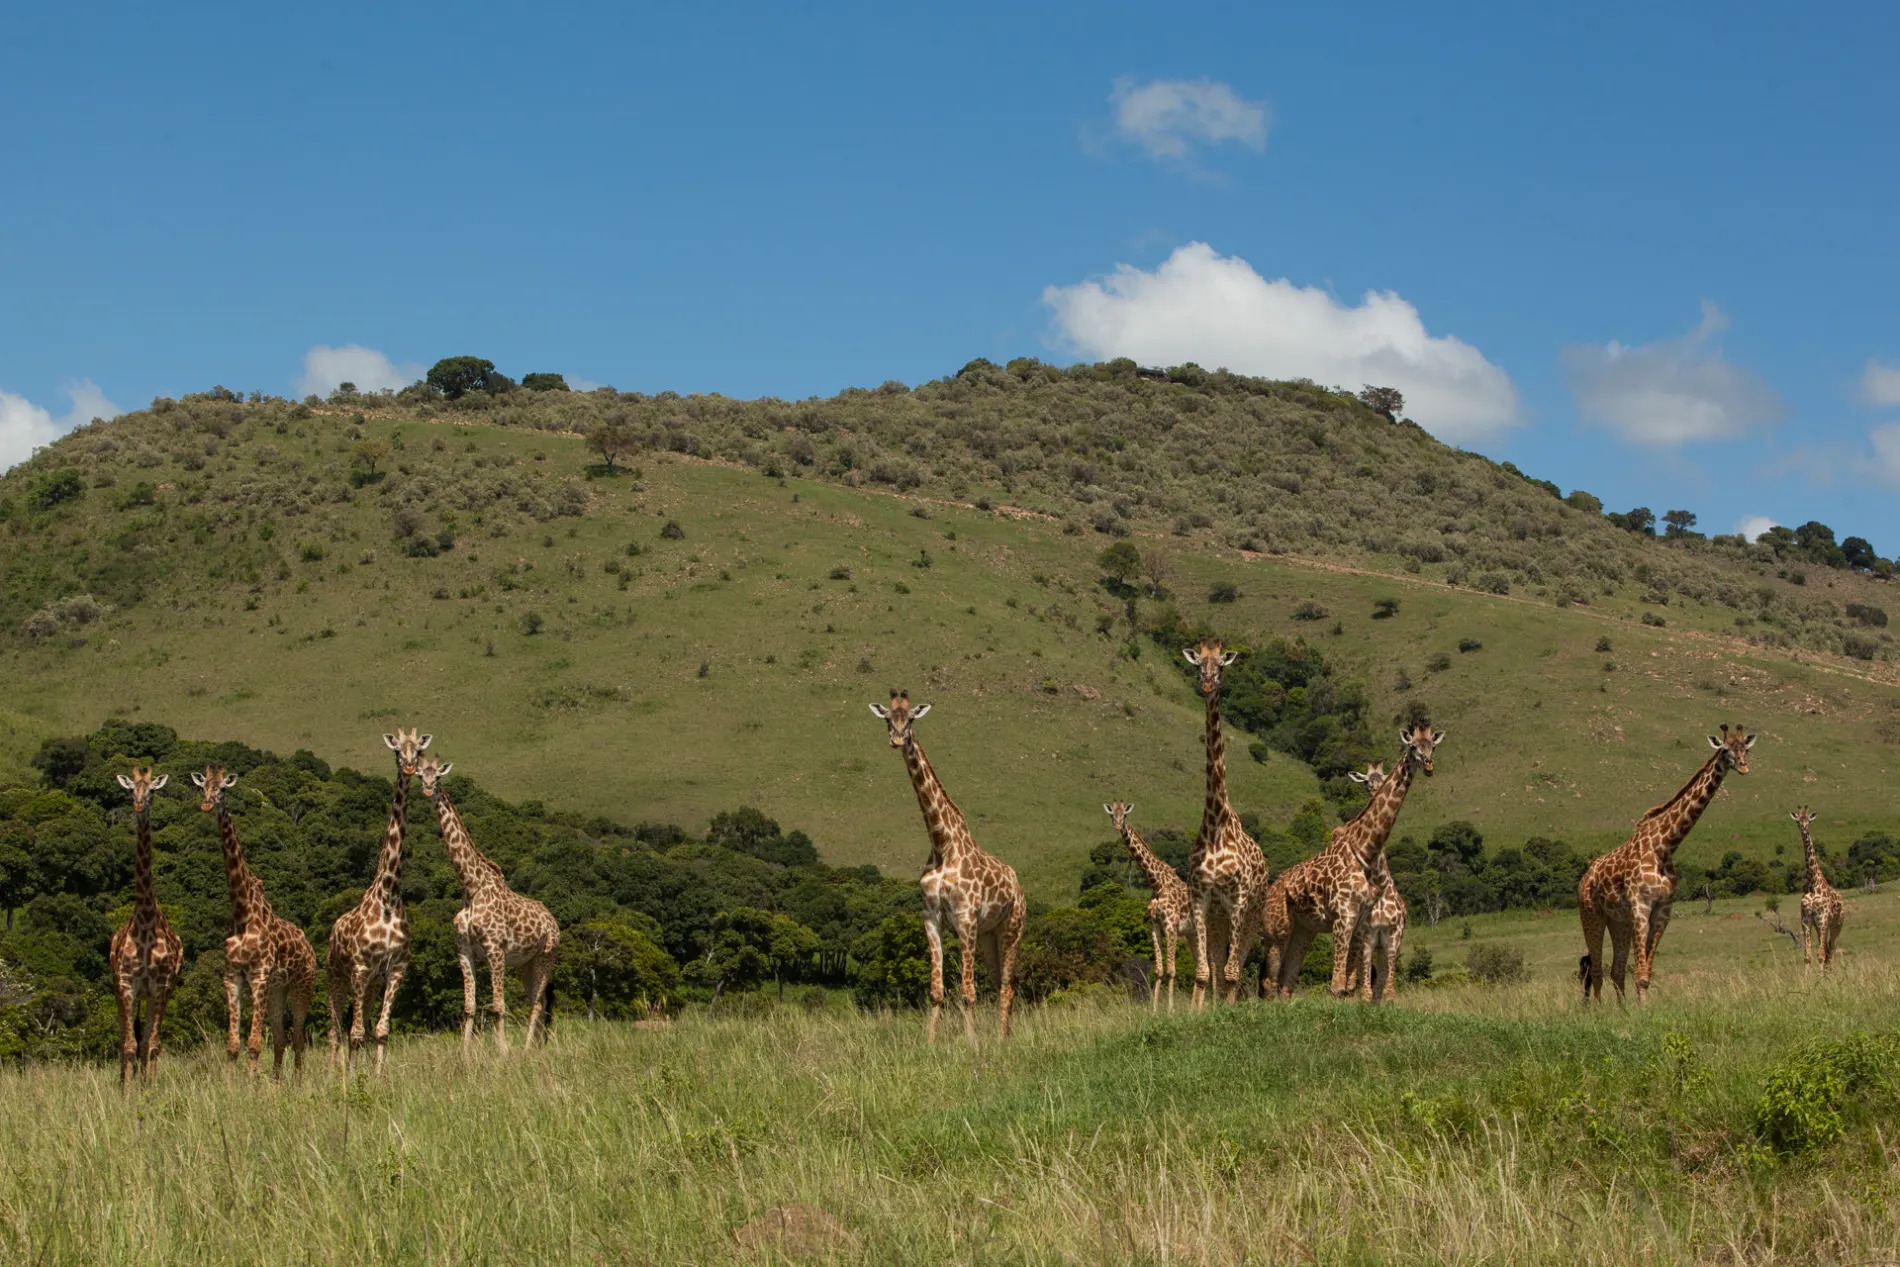 Giraffe and escarpment